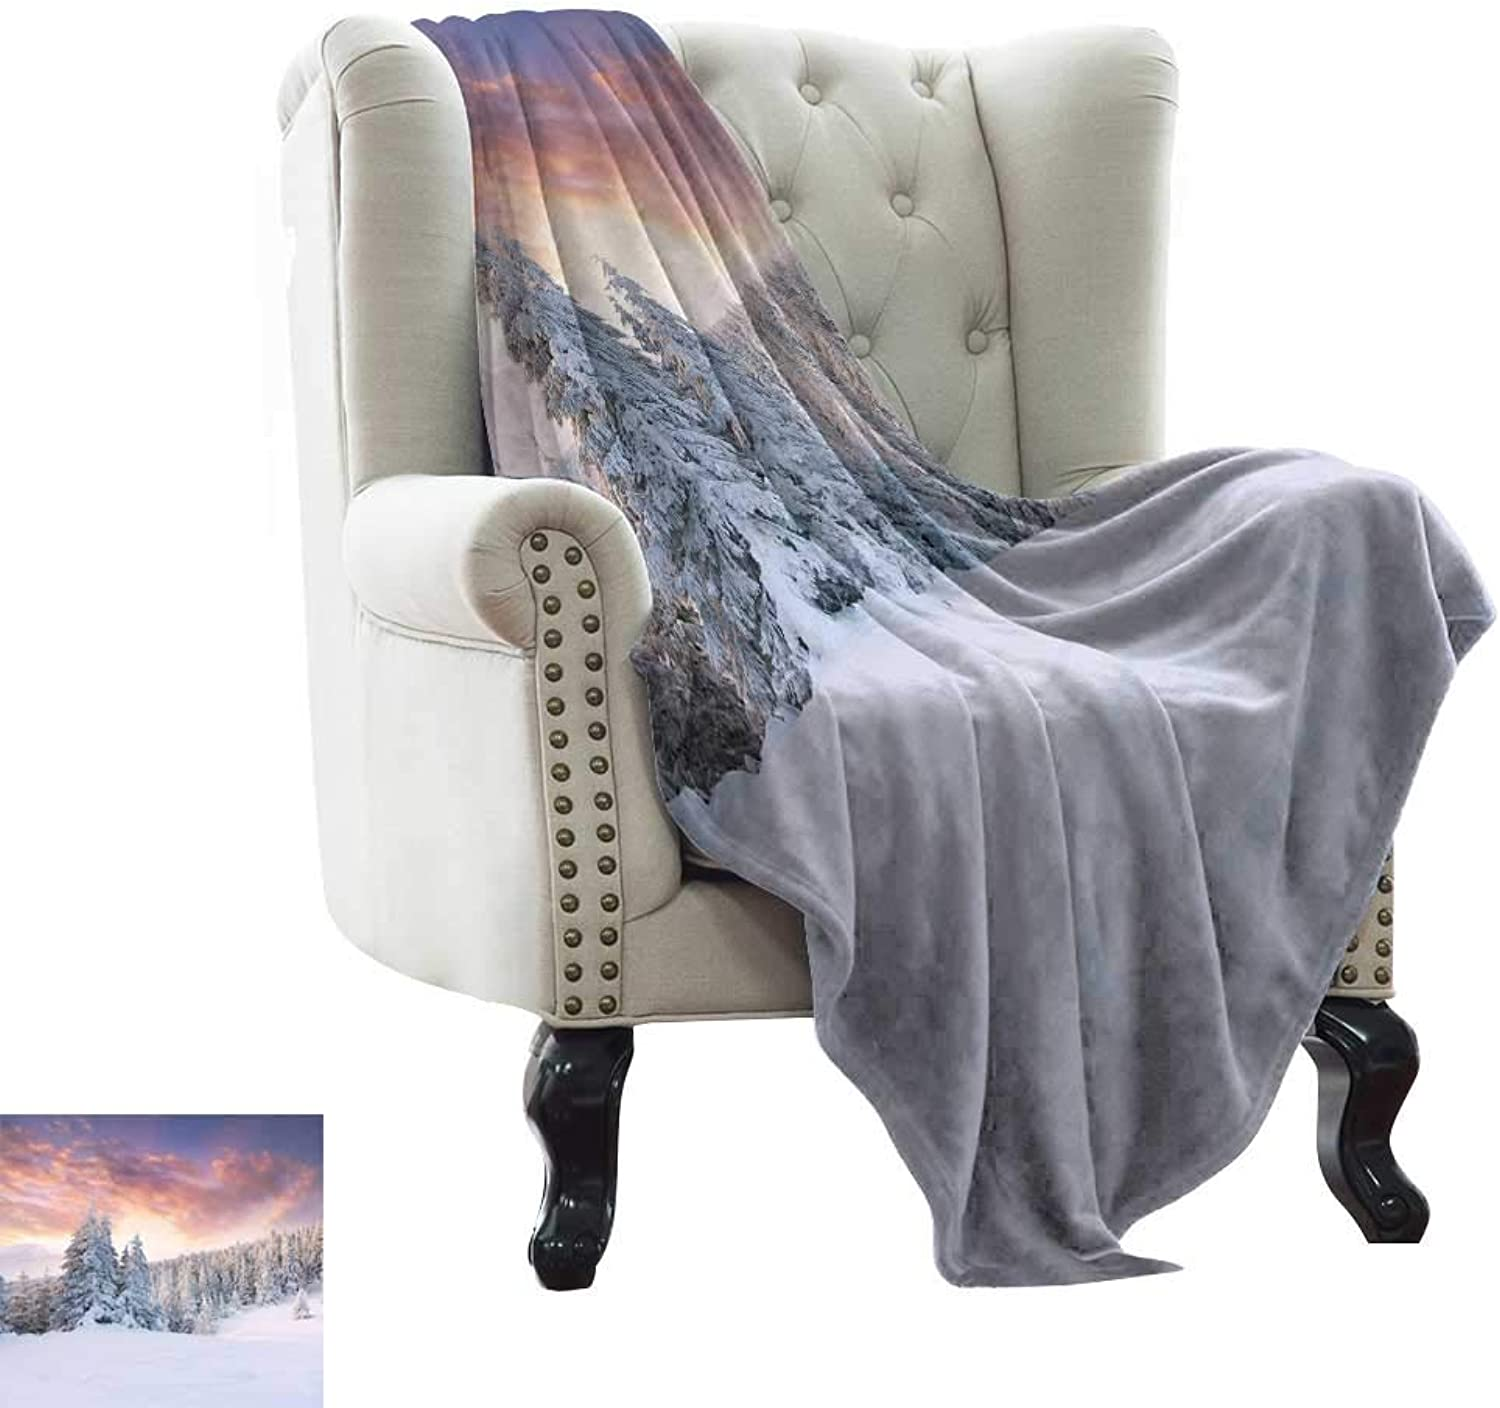 LsWOW Camping Blanket Winter,Sunrise in The Winter Landscape Snowy Fields Frozen Pine Trees Northern Hemisphere Reversible Soft Fabric for Couch Sofa Easy Care 60 x62